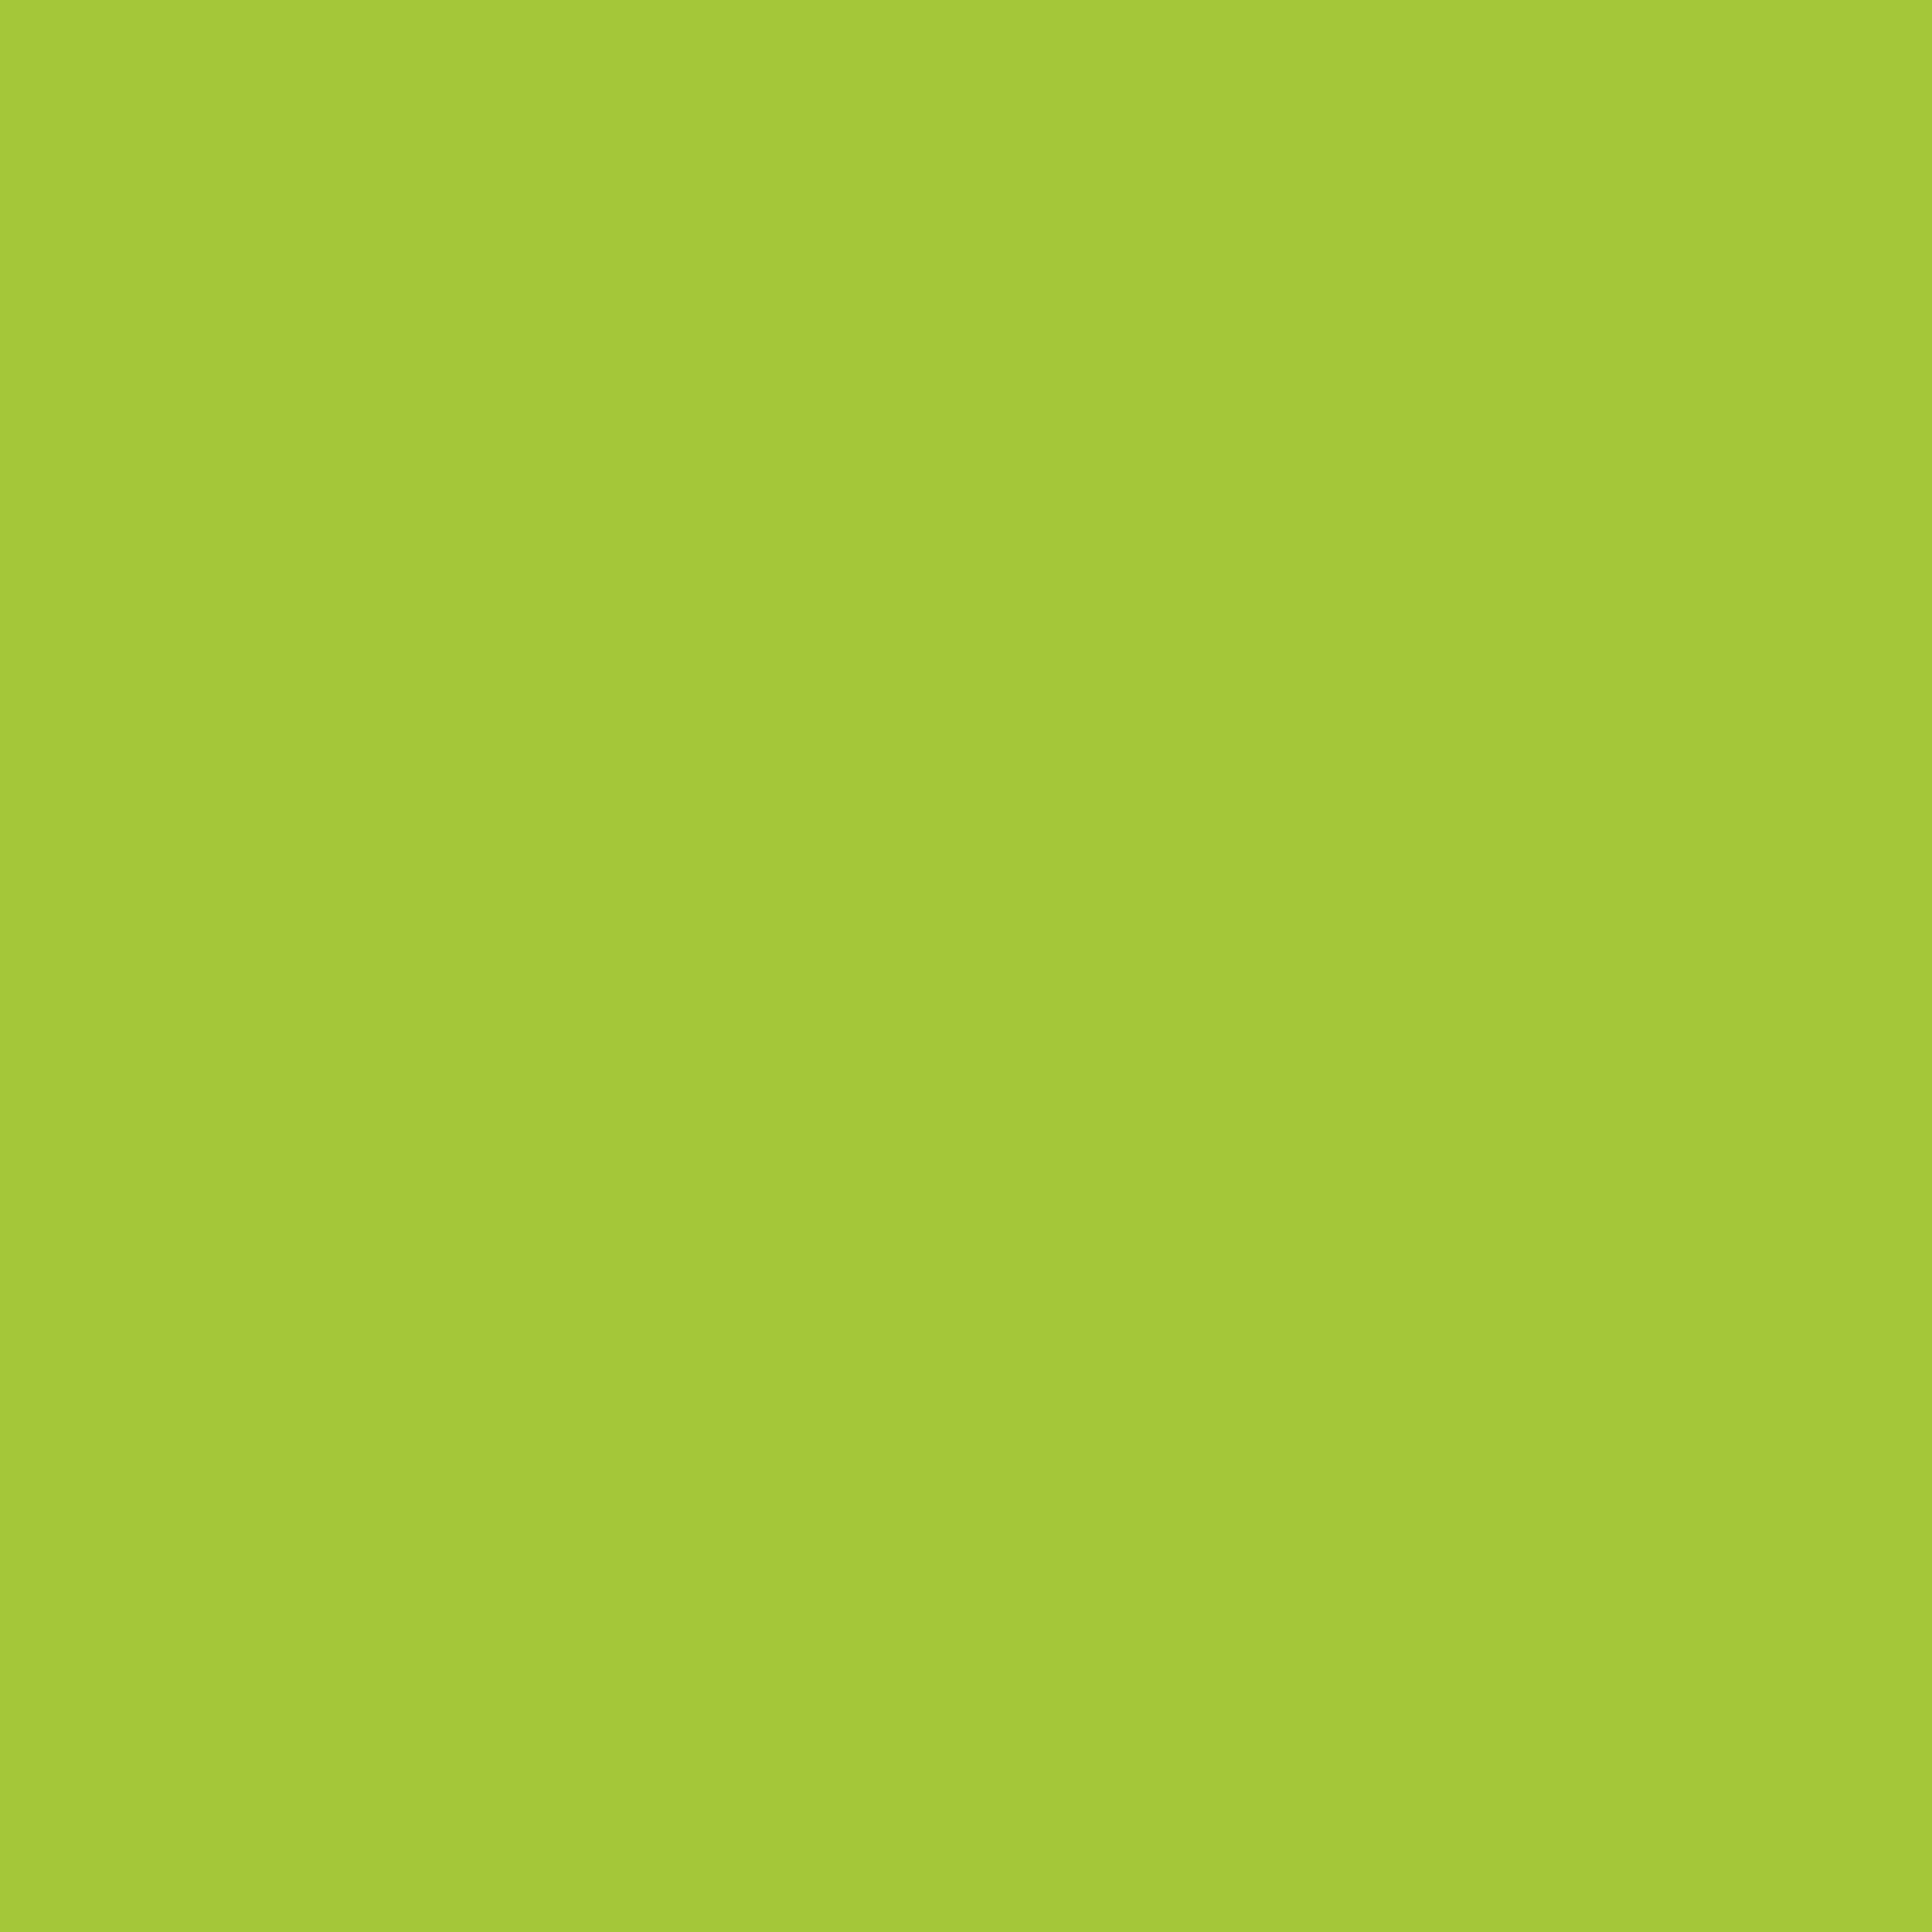 android green solid color background  boys  girls club  summerside